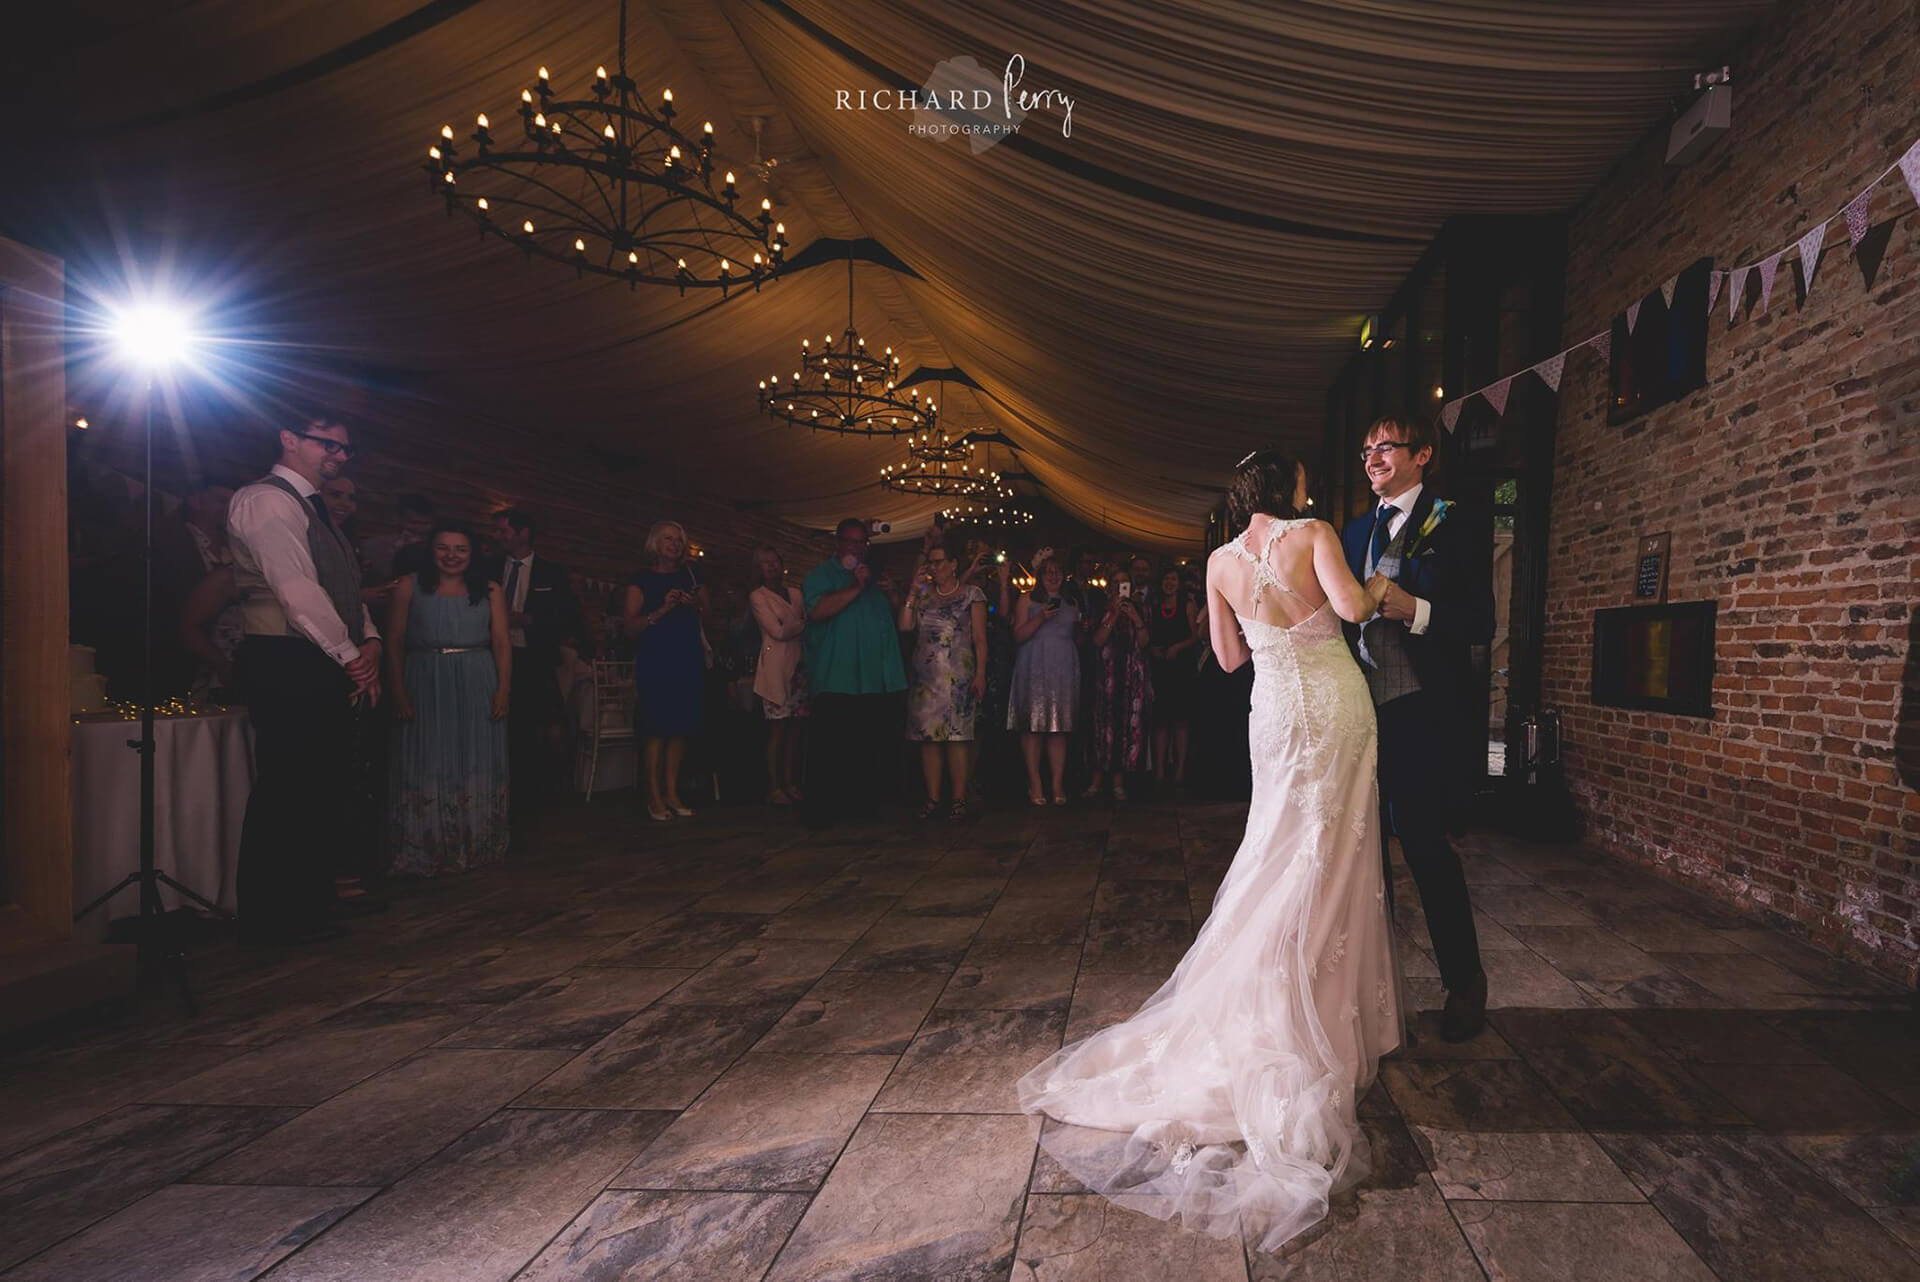 "<a href=""https://richardperryphotography.com/"" target=""_blank"">Richard Perry</a> captured this special moment between Sarah and Niel during their first dance."